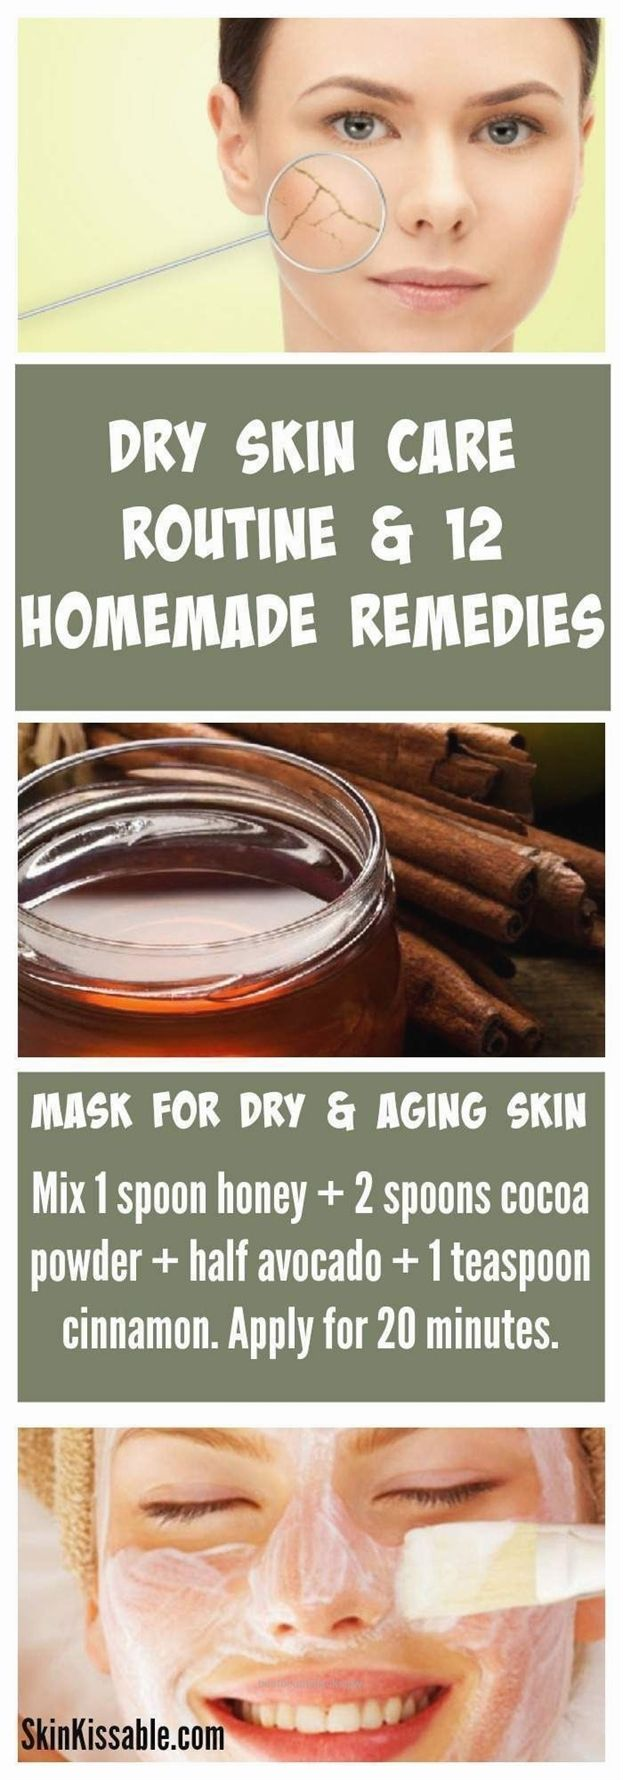 Dry Skin Care Routine and Home Remedies How to deal with dry skin